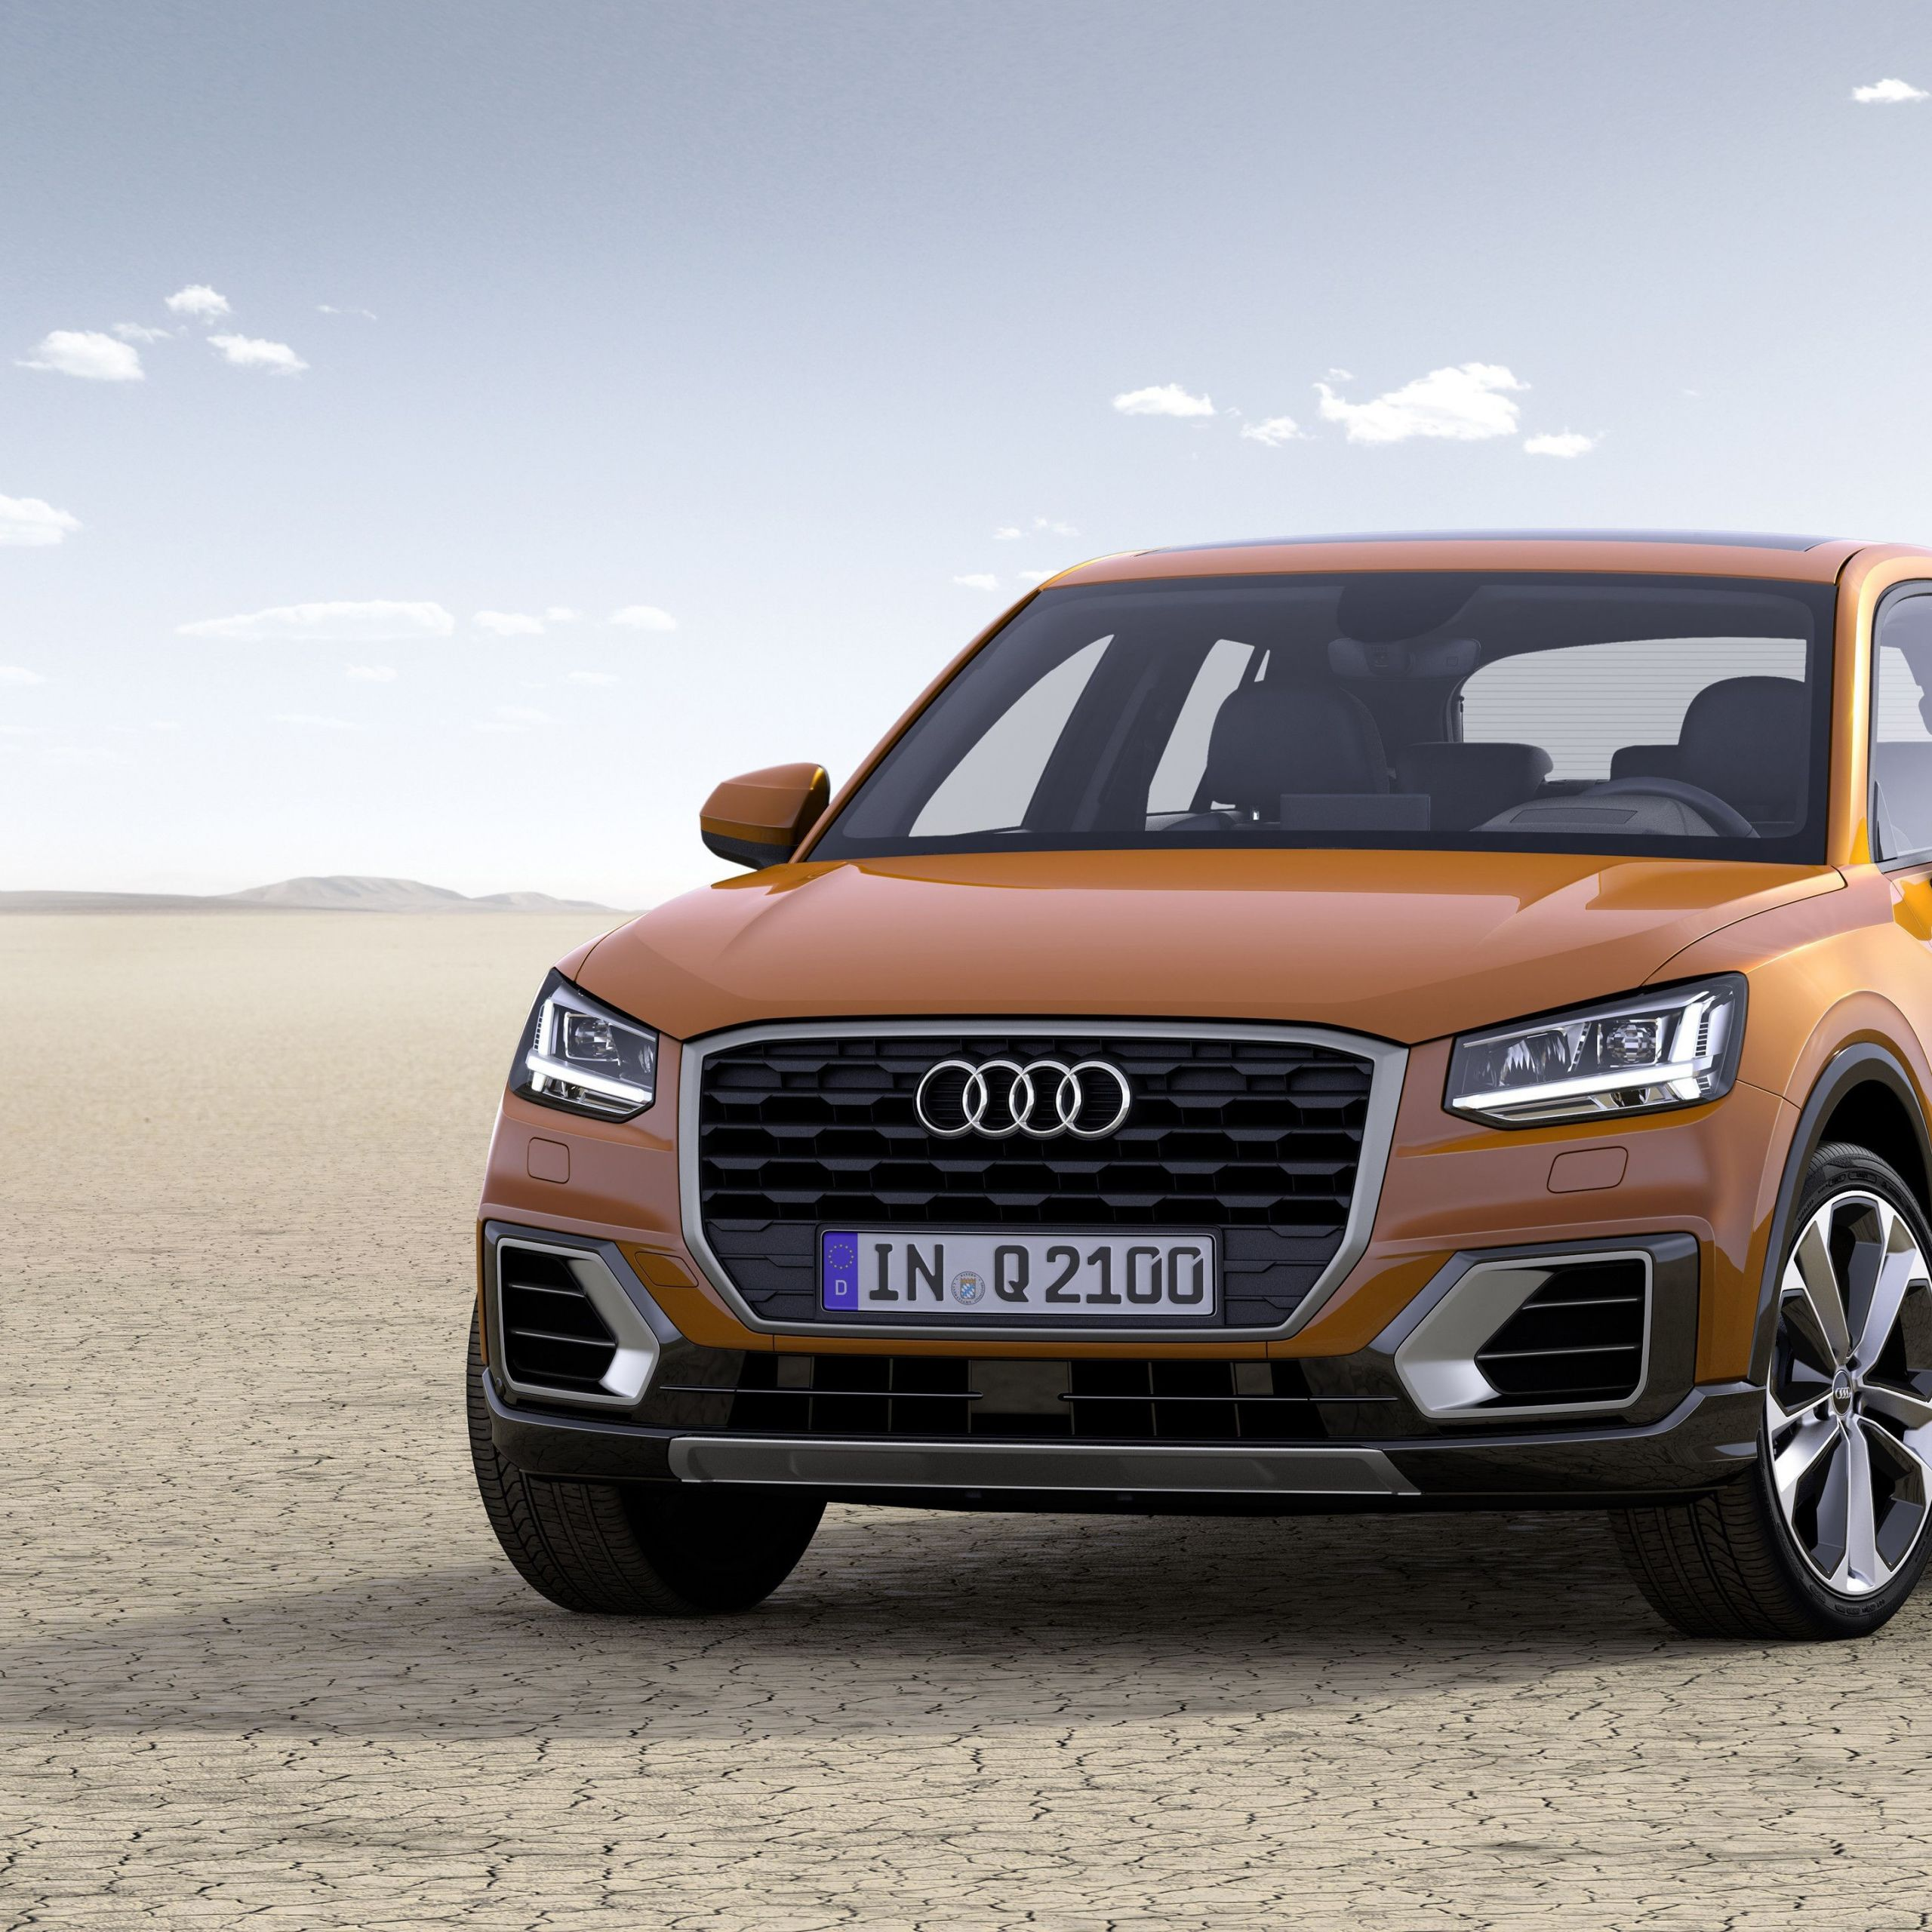 Audi Q3 2013 Unique the Q2 Certainly Looks Distinctive with Its Floating Blade